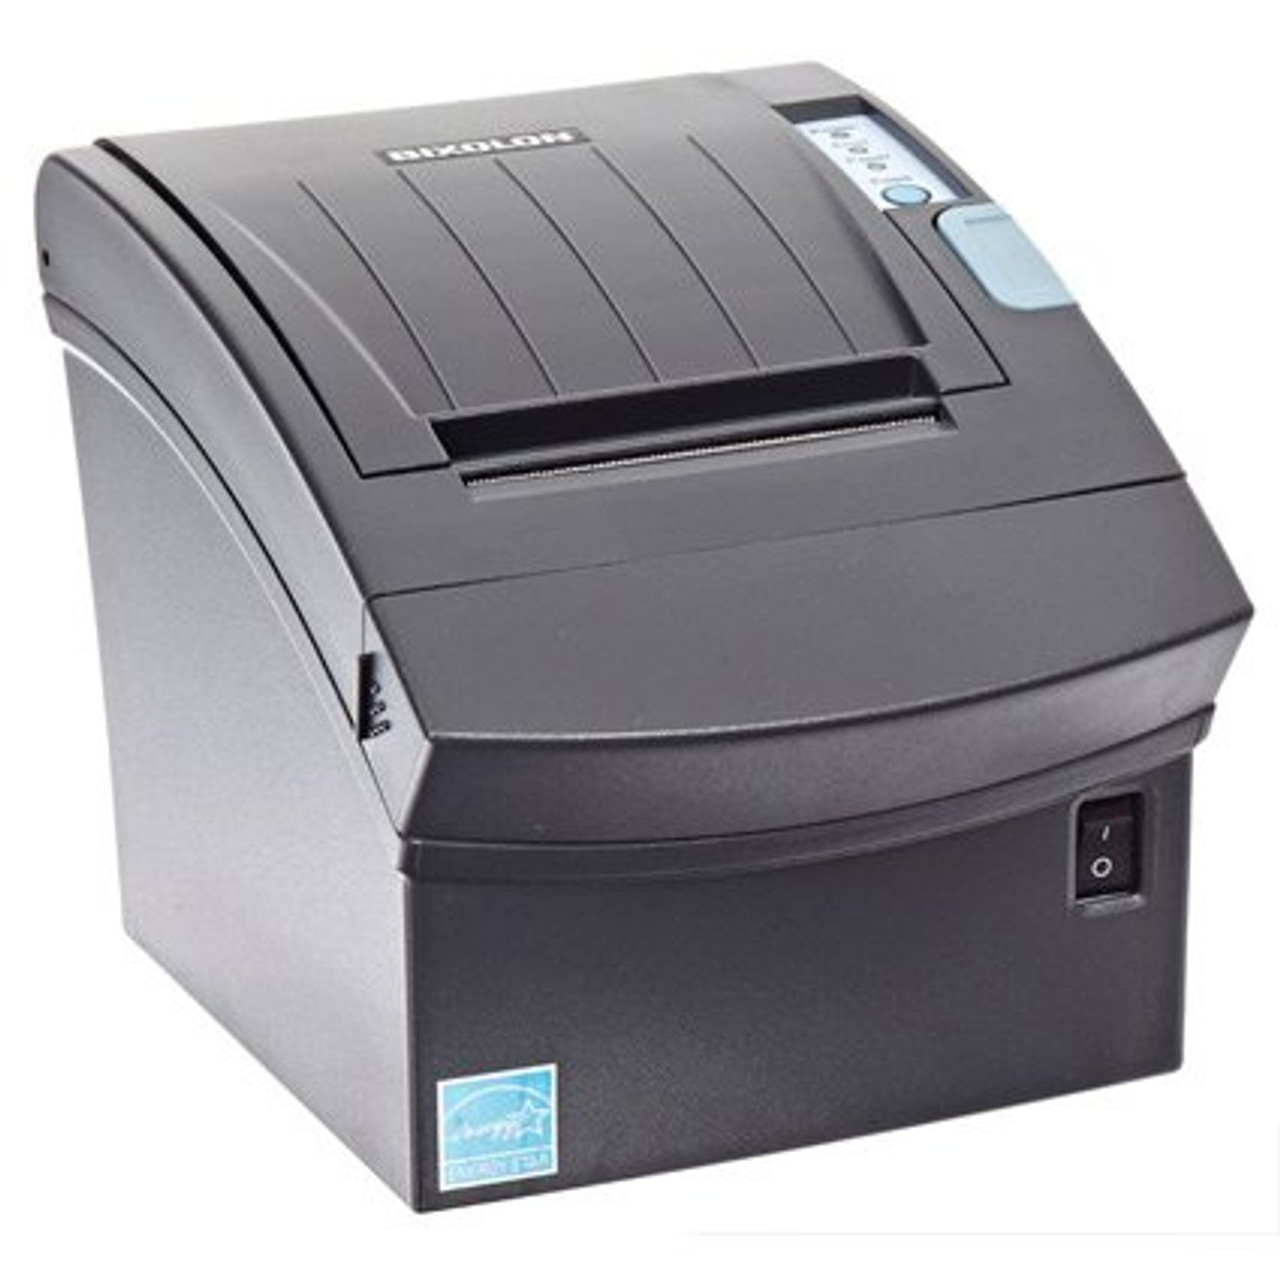 BIXOLON SRP-350III PLUS Thermal Receipt Printer